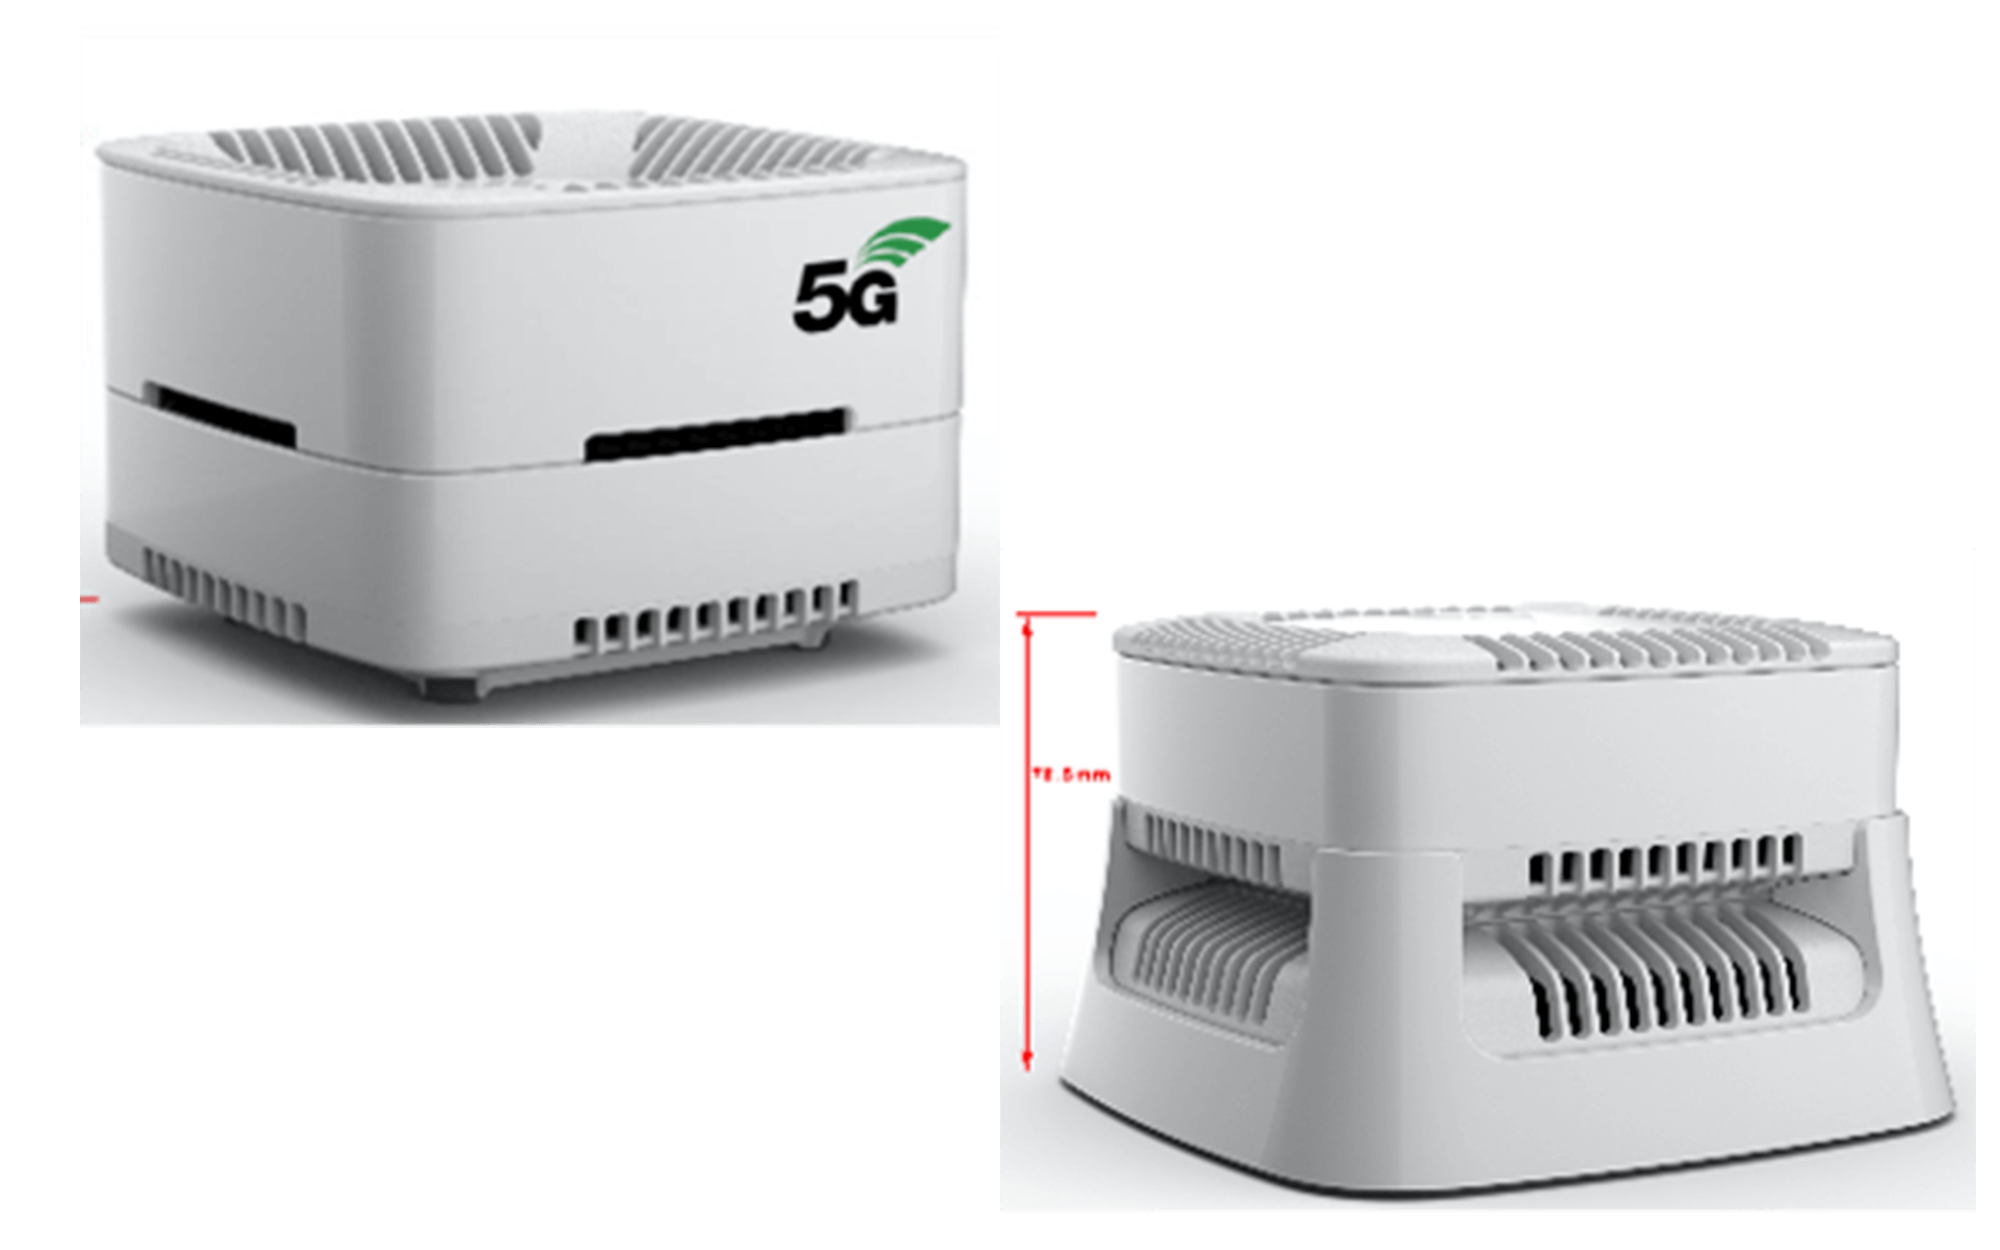 5g1 and 5g2